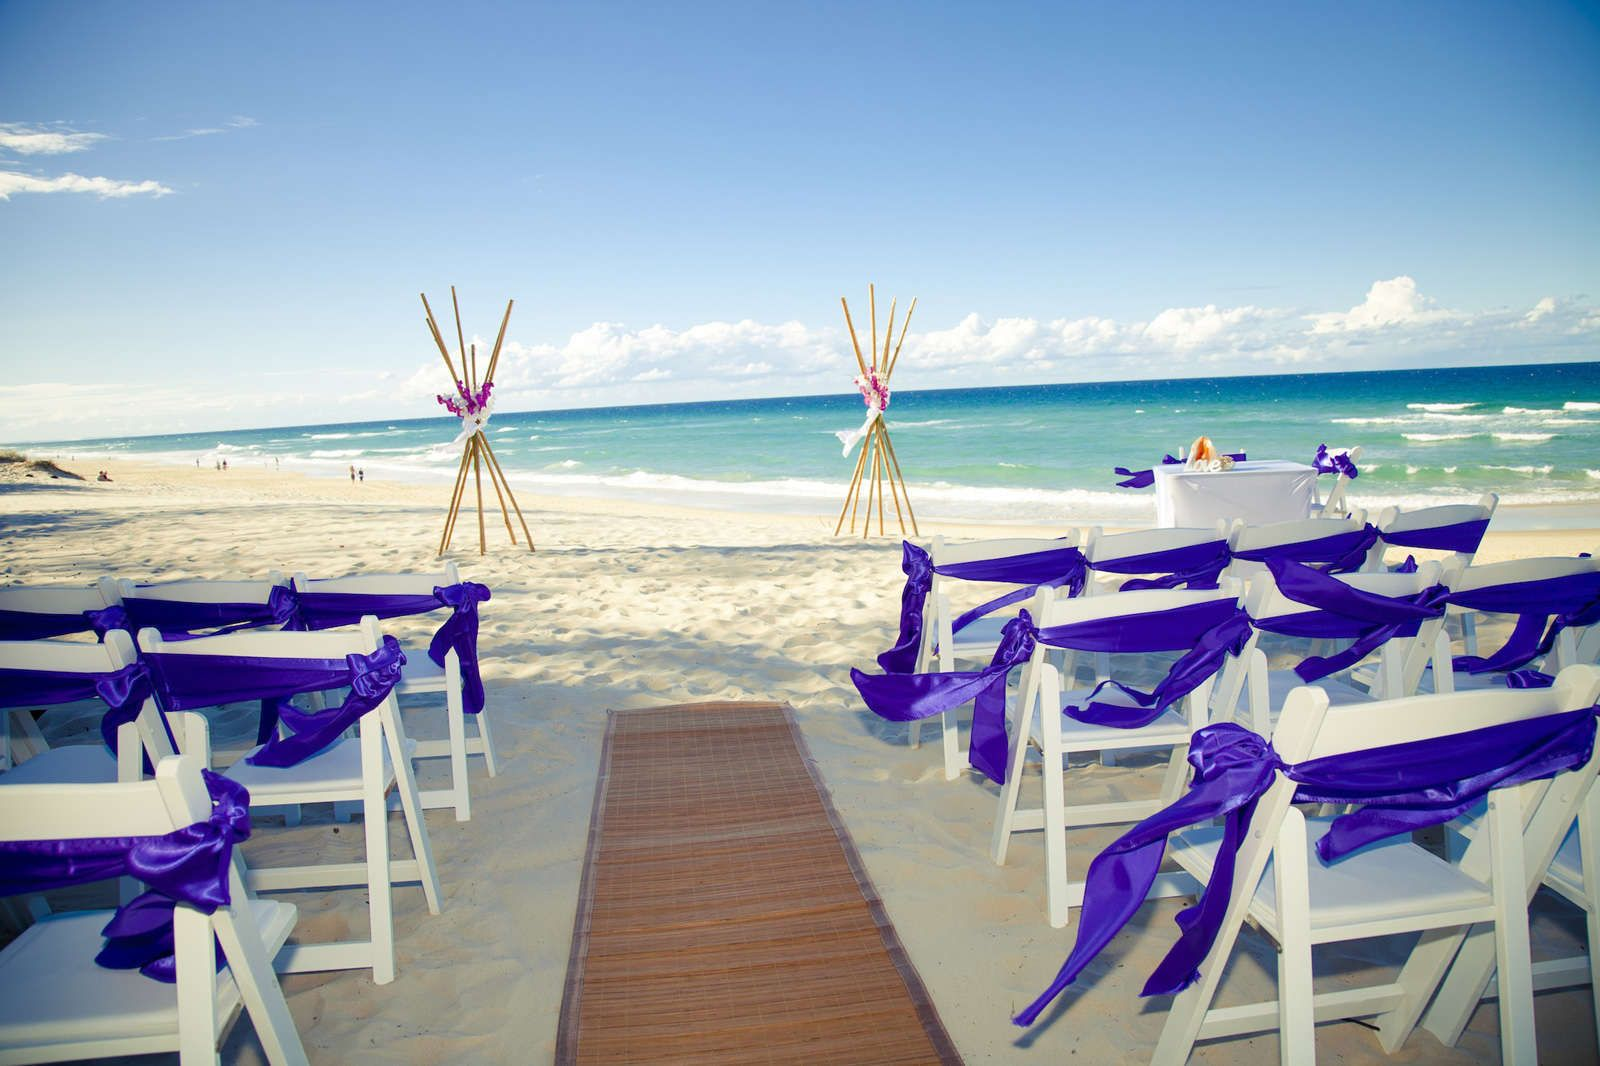 Beach Wedding Venue 25 Image Wallpaper 1004 Hd Wallpapers